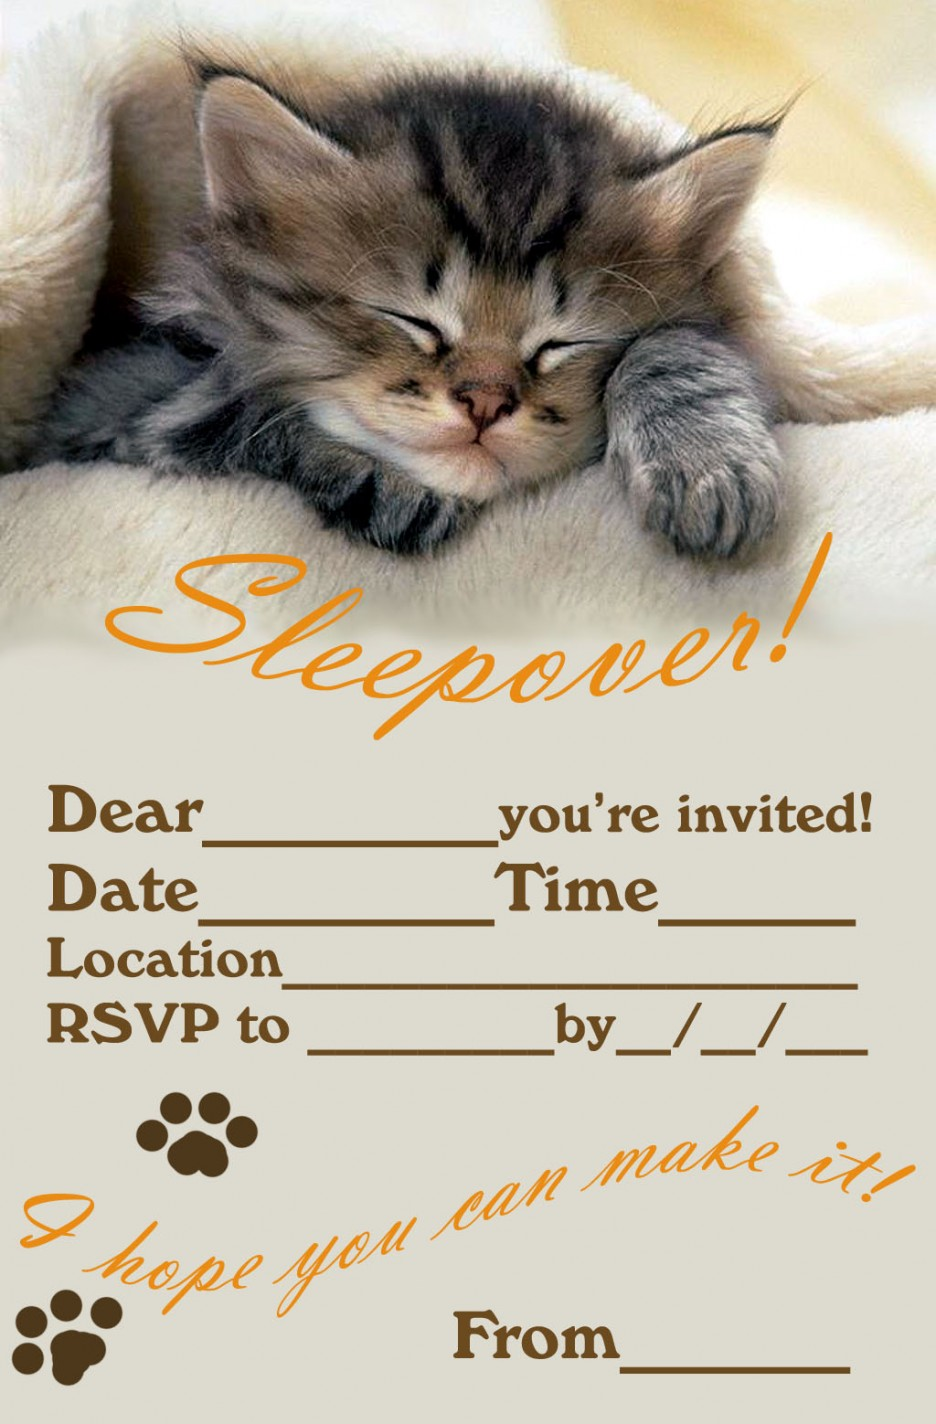 cat birthday invitation templates ; cute-cat-sleepover-teen-birthday-invitation-template-teen-birthday-invitation-templates-birthday-invitations-sweet-teen-birthday-invitation-templates-idea-936x1424